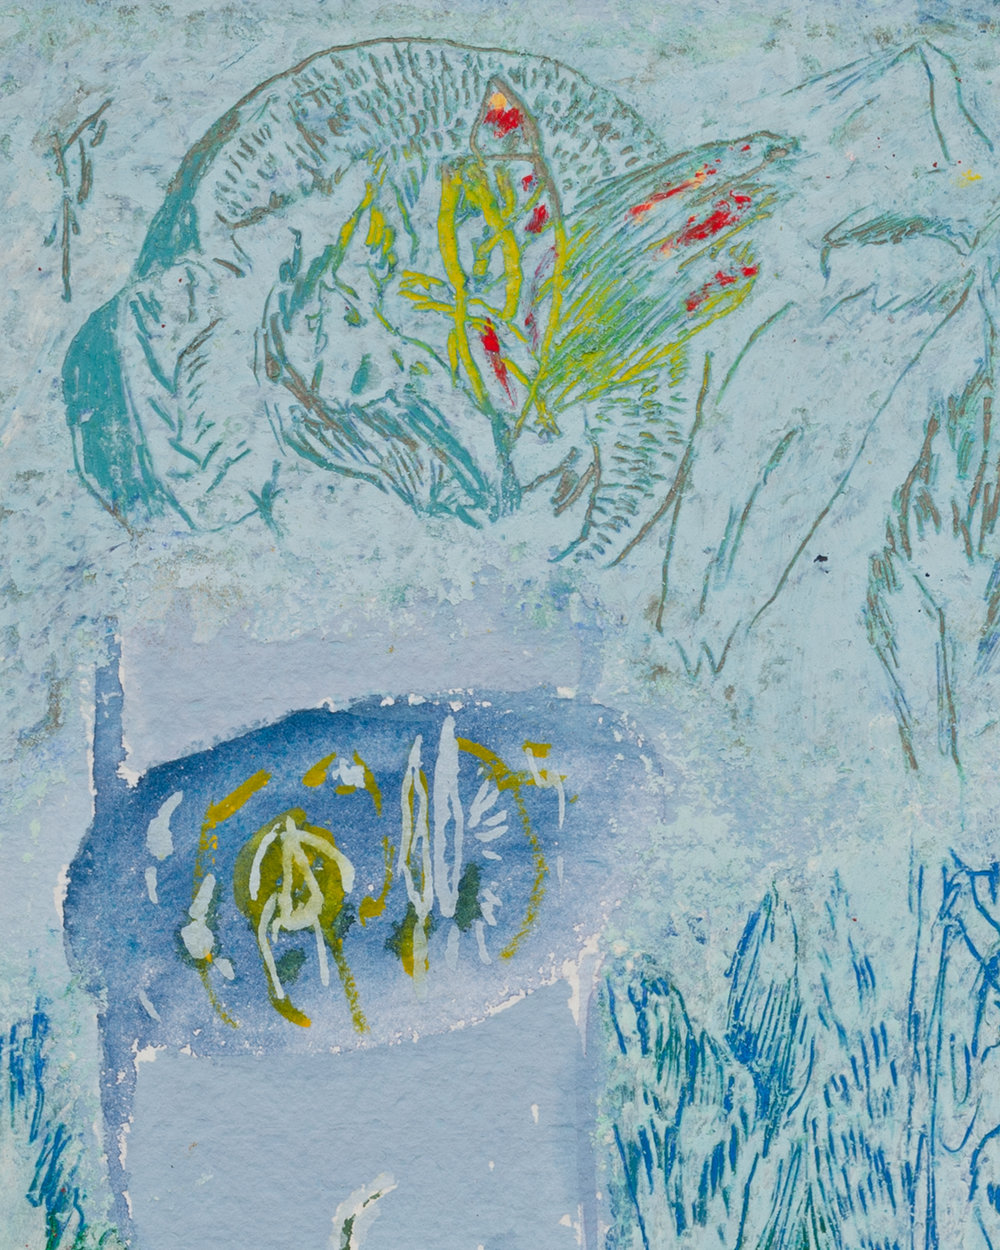 Mimi Lauter  Untitled  (Detail) 2018 Oil pastel and soft pastel on paper 9 ¼h x 7w in MLaut094